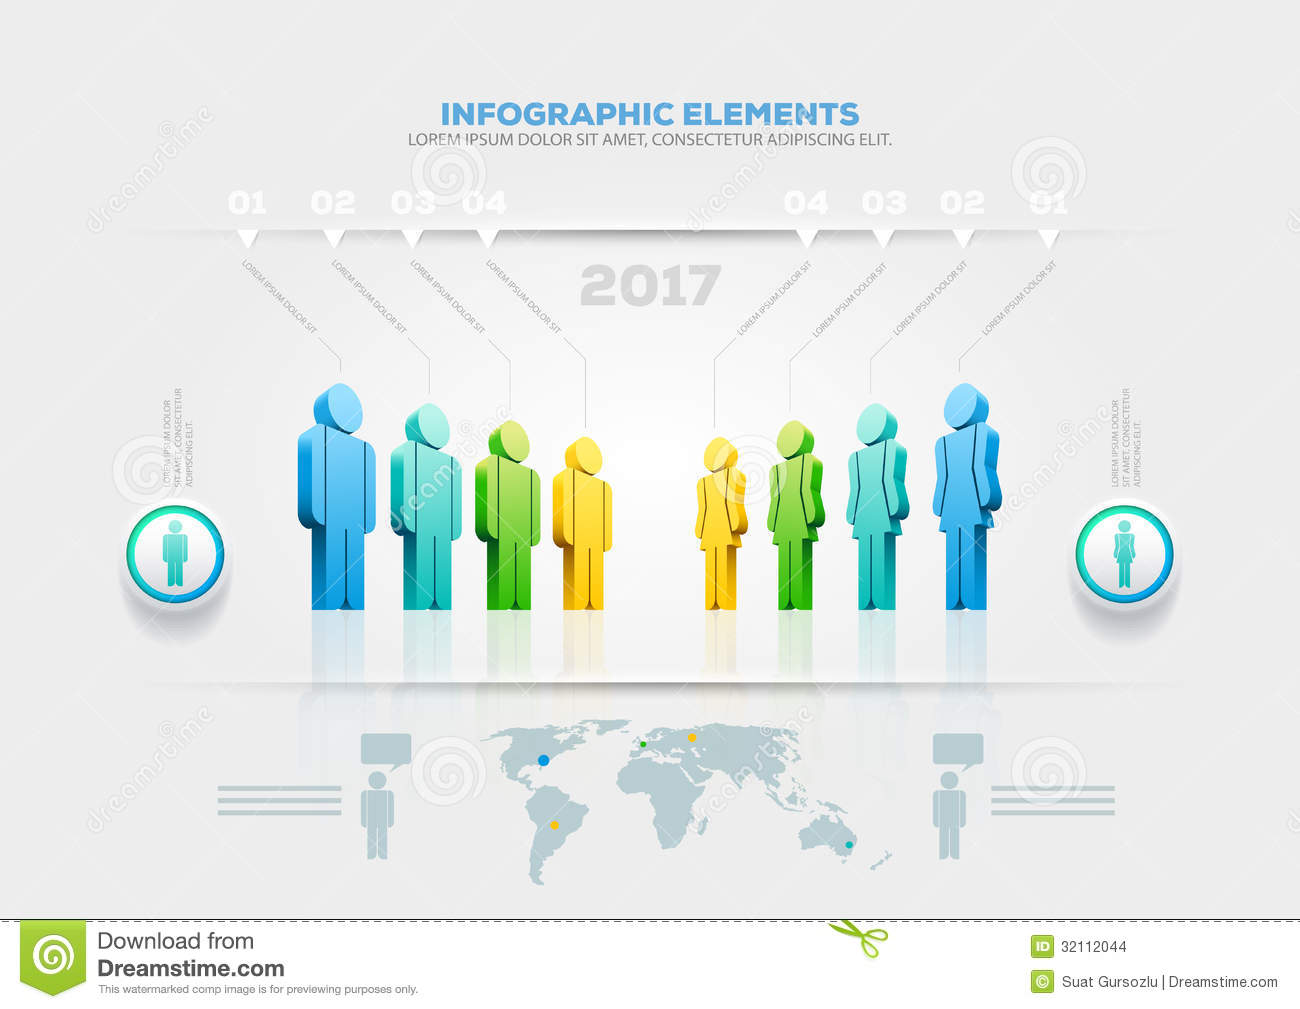 People Infographic Design Template Stock Photo - Image: 32035840